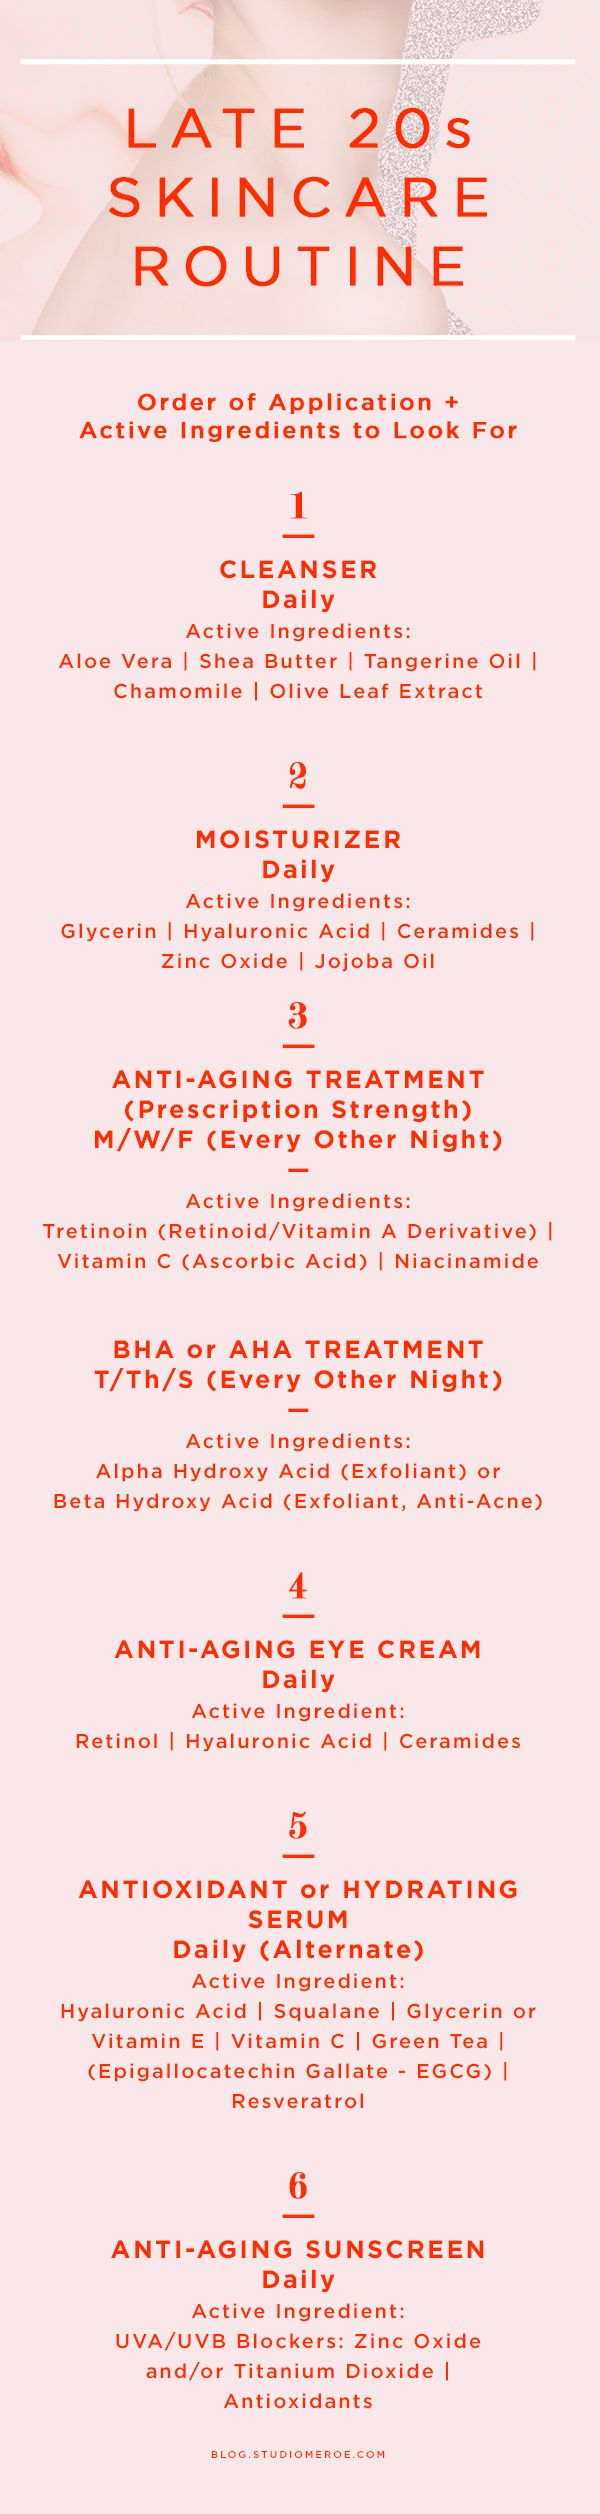 Late 20s skin care routine Order of application + active ingredients to look for skin care tips anti-aging @studiomeroe